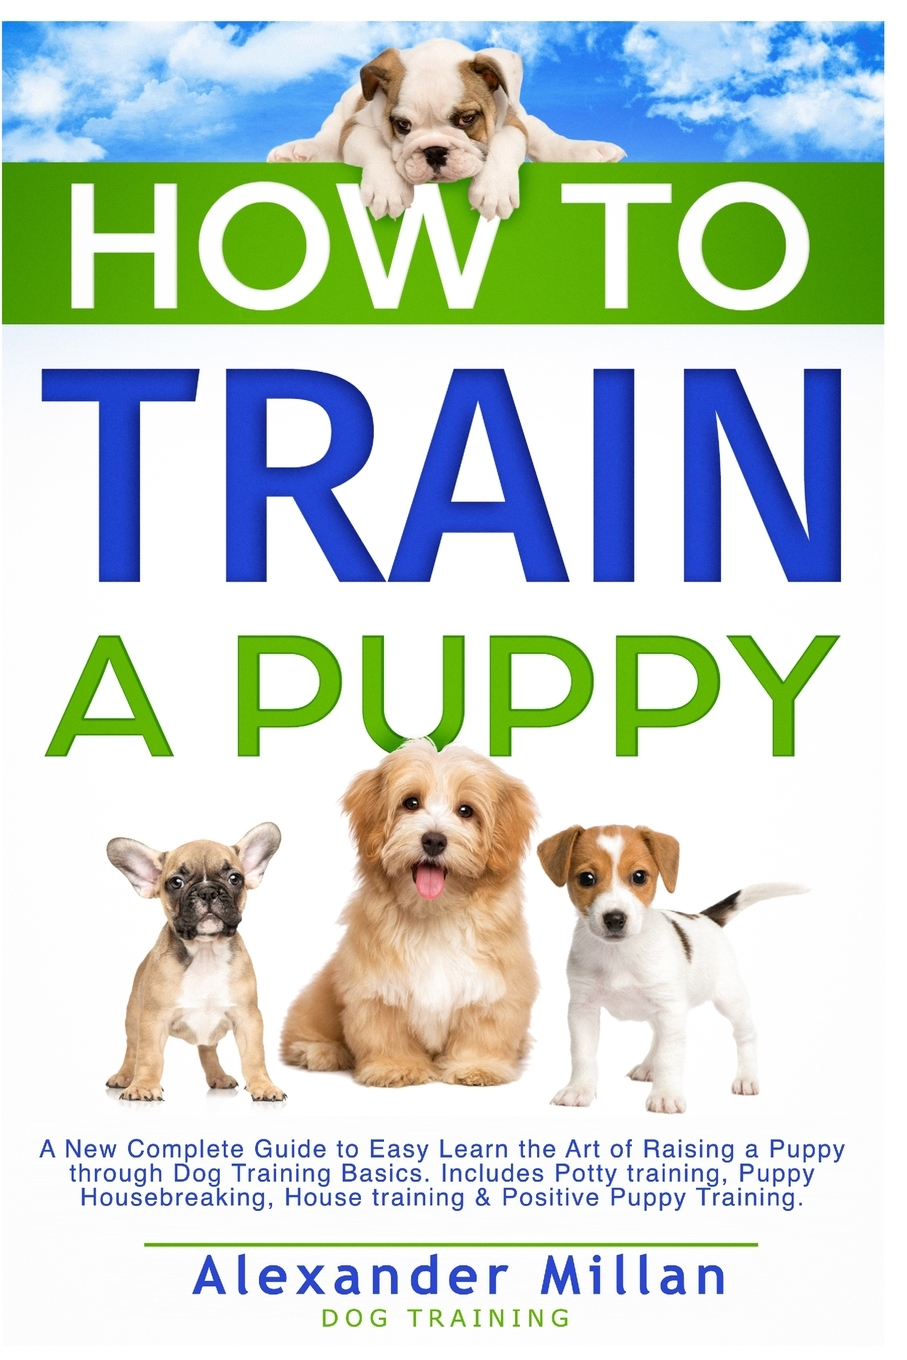 How To Train A Puppy A New Complete Guide To Easy Learn The Art Of Raising A Puppy Through Dog Training Basics Includes Potty Training Puppy Housebreaking House Training Positive